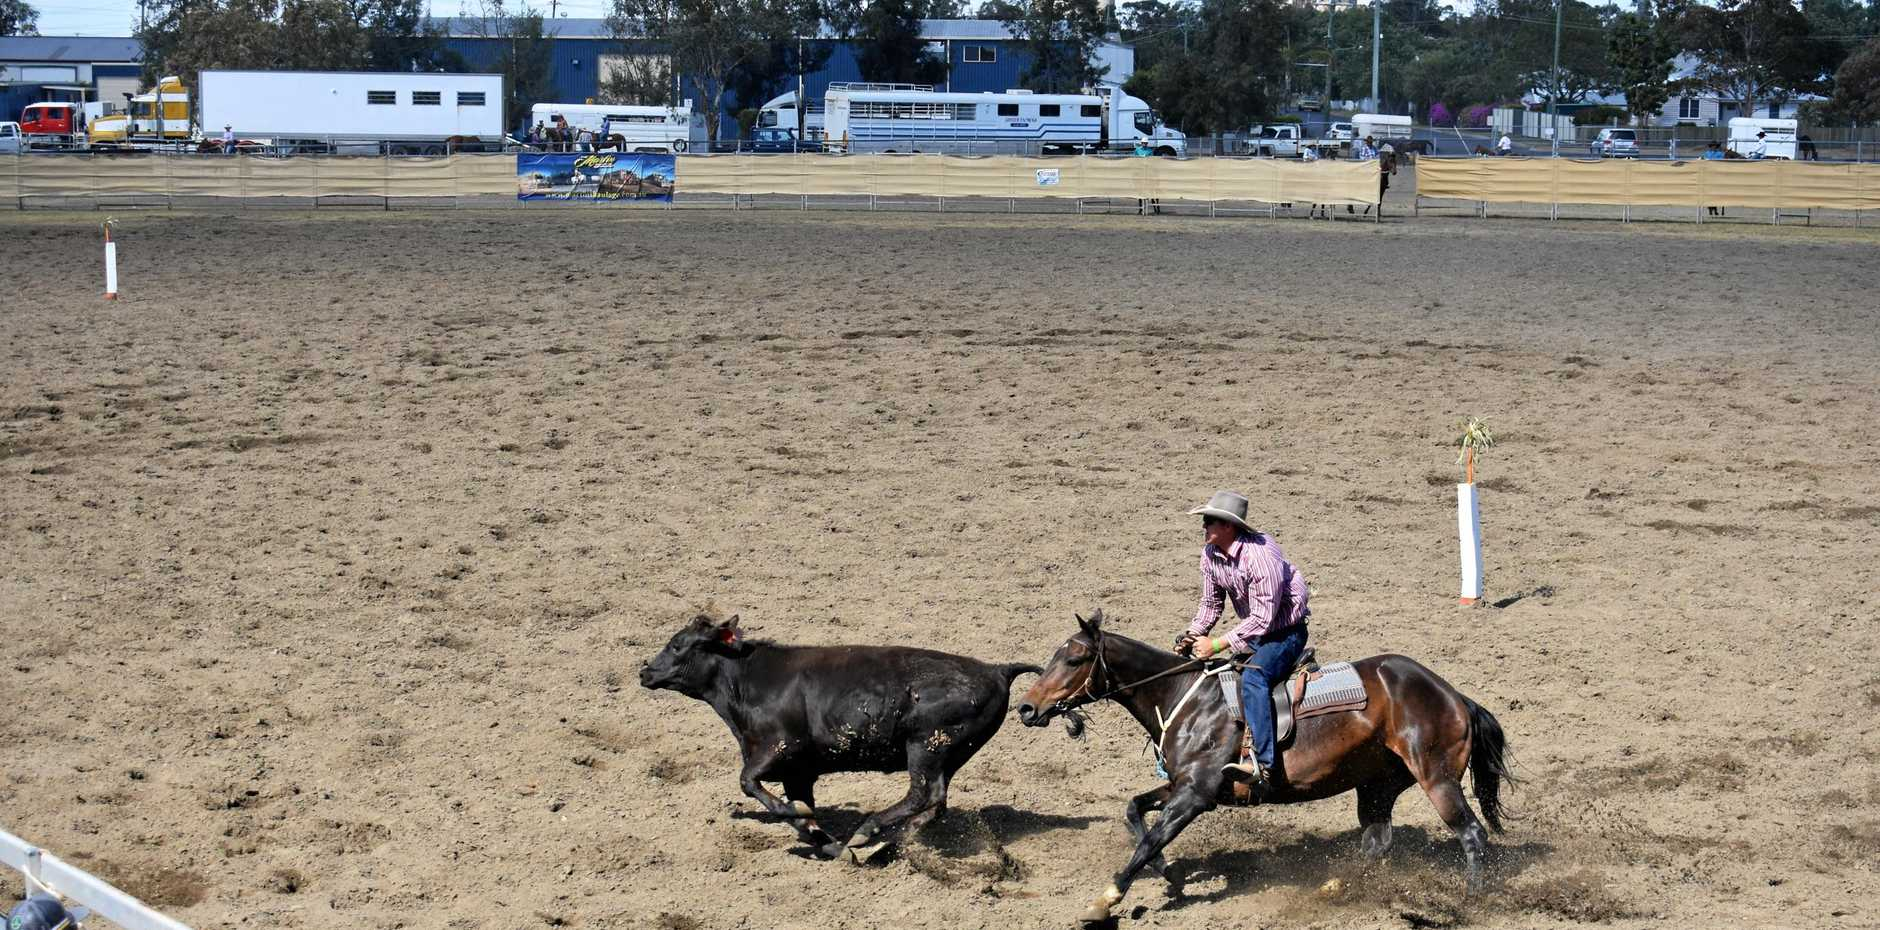 GIDDY-UP: The campdrafting event on Friday at the Dalby Australian Stock Horse Sale 2018.